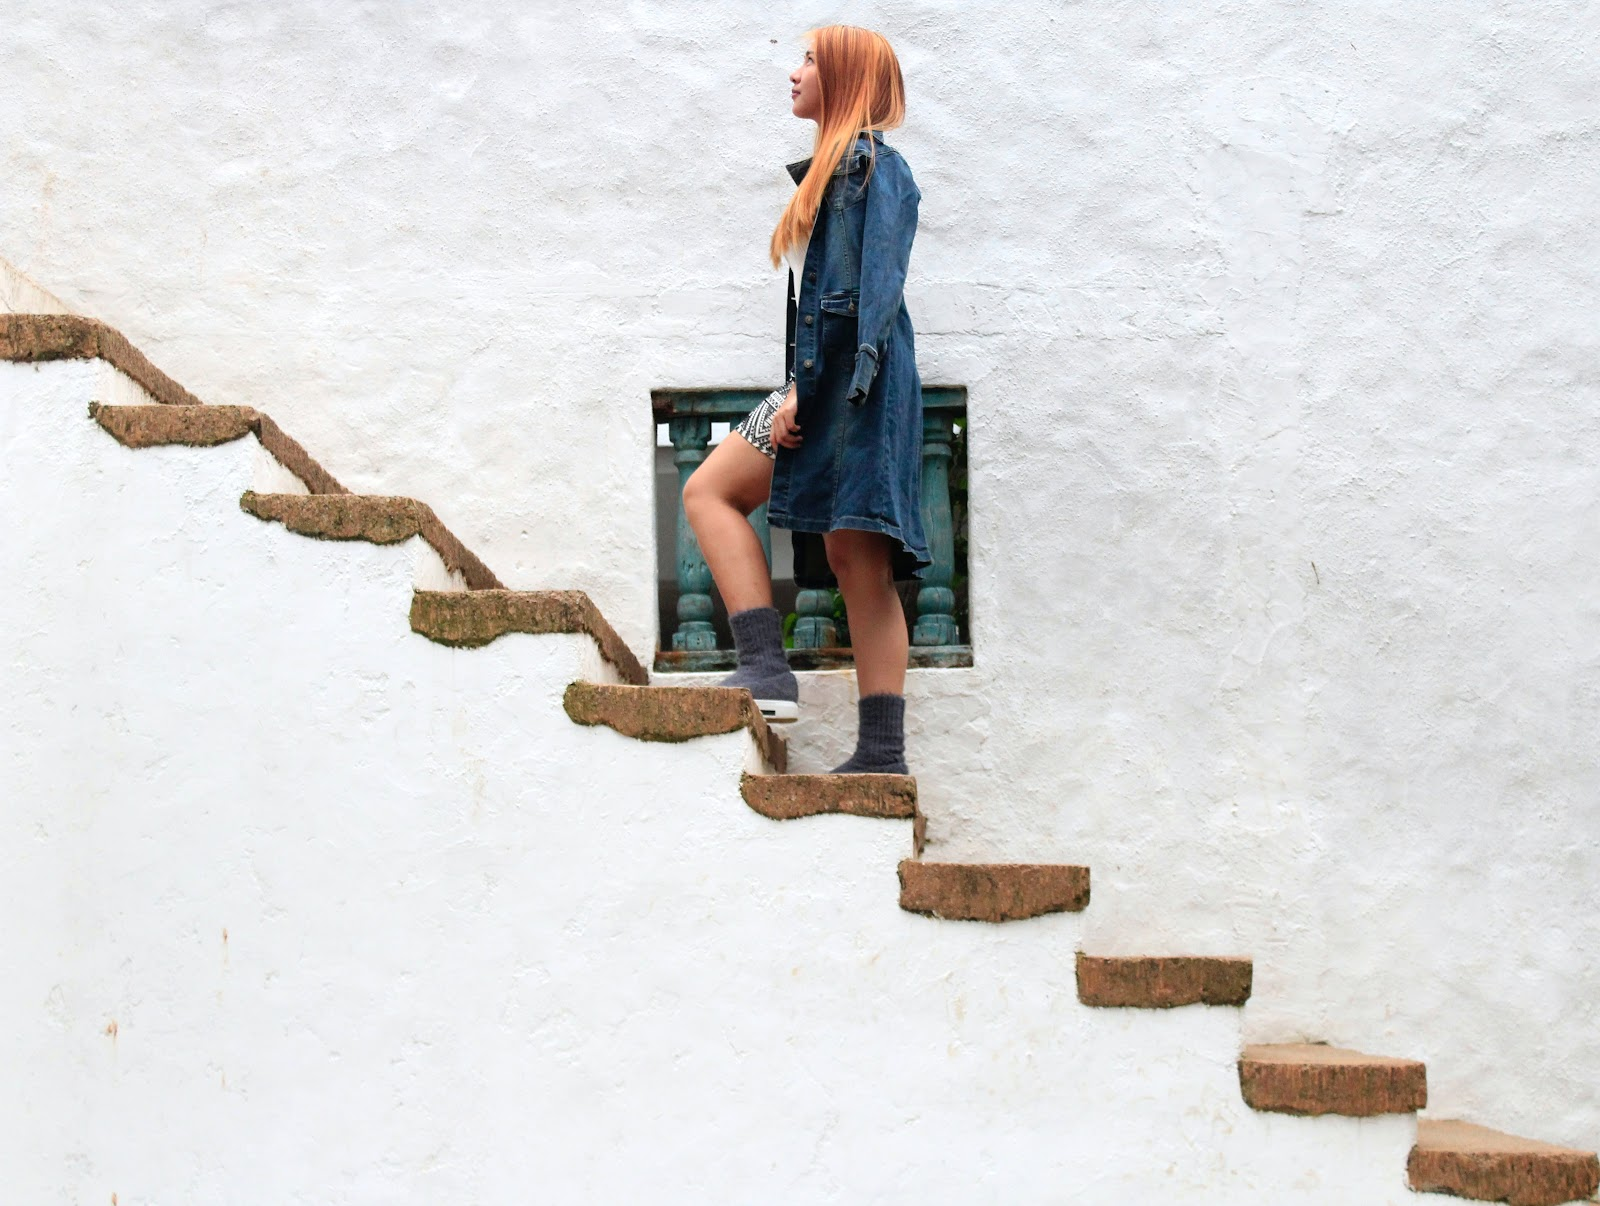 climbing the stairs to success. MSP Scaling with Support Adventure